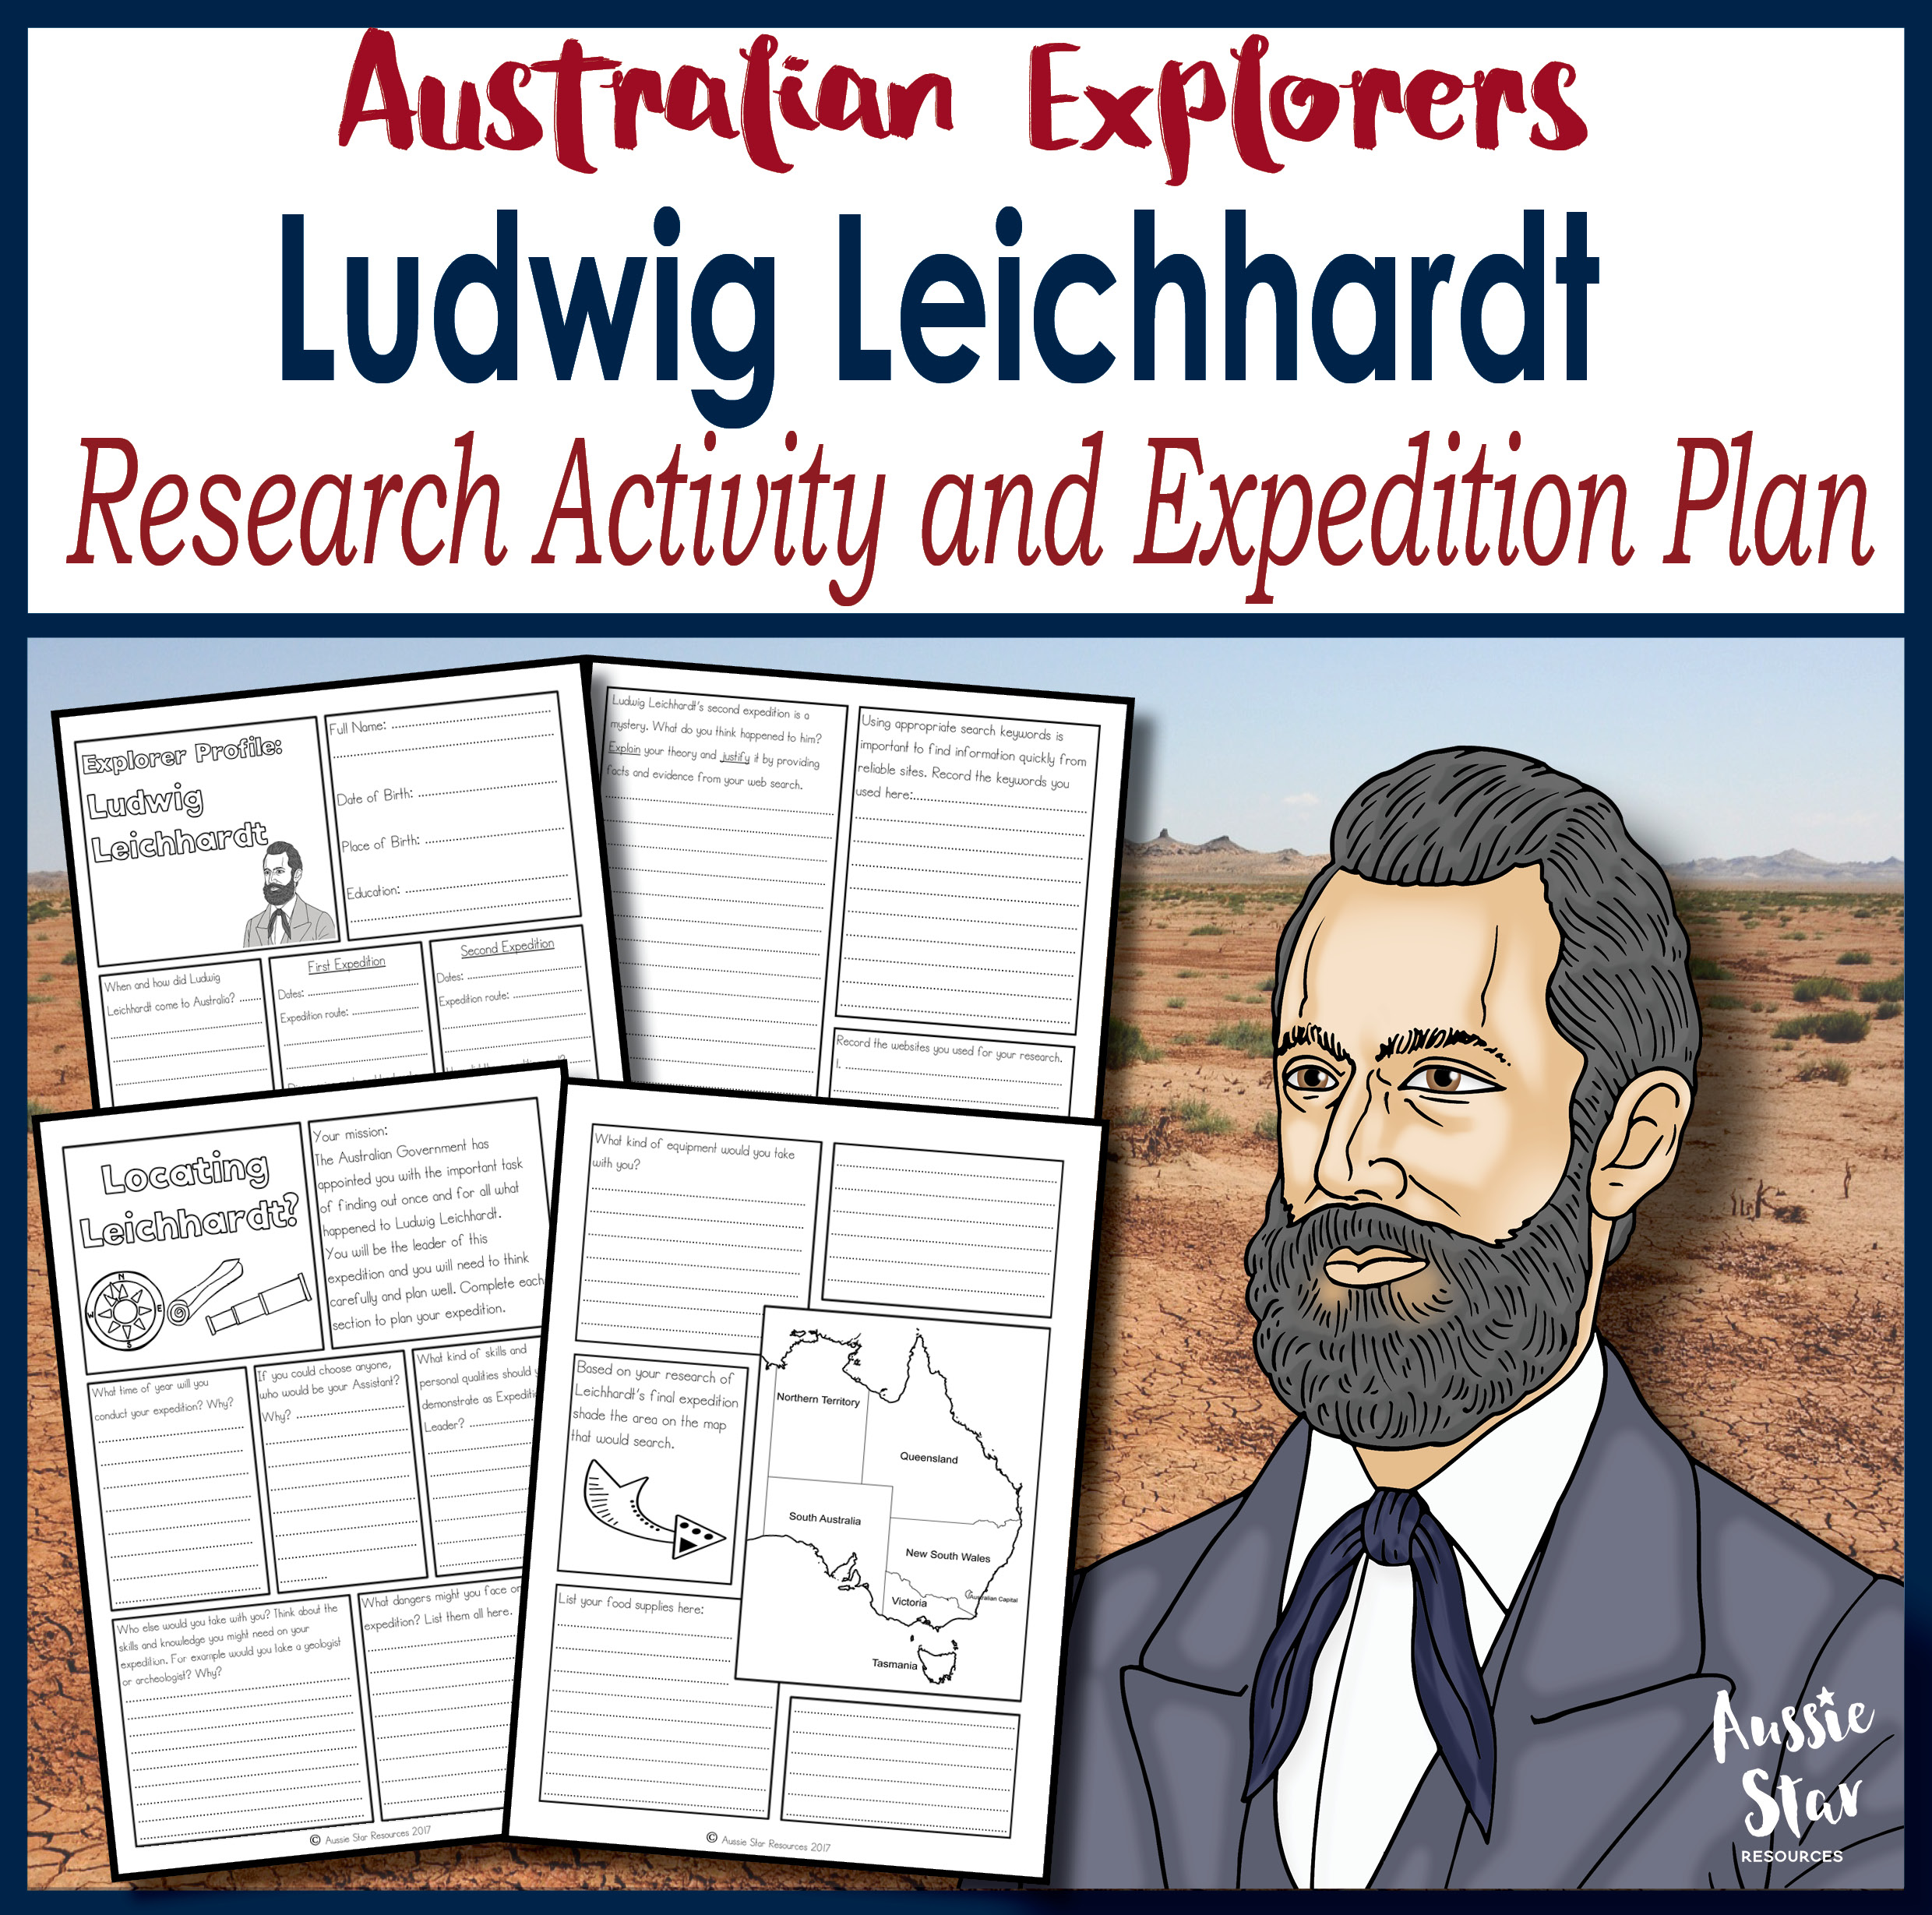 Ludwig Leichhardt Research Activity and Expedition Planner